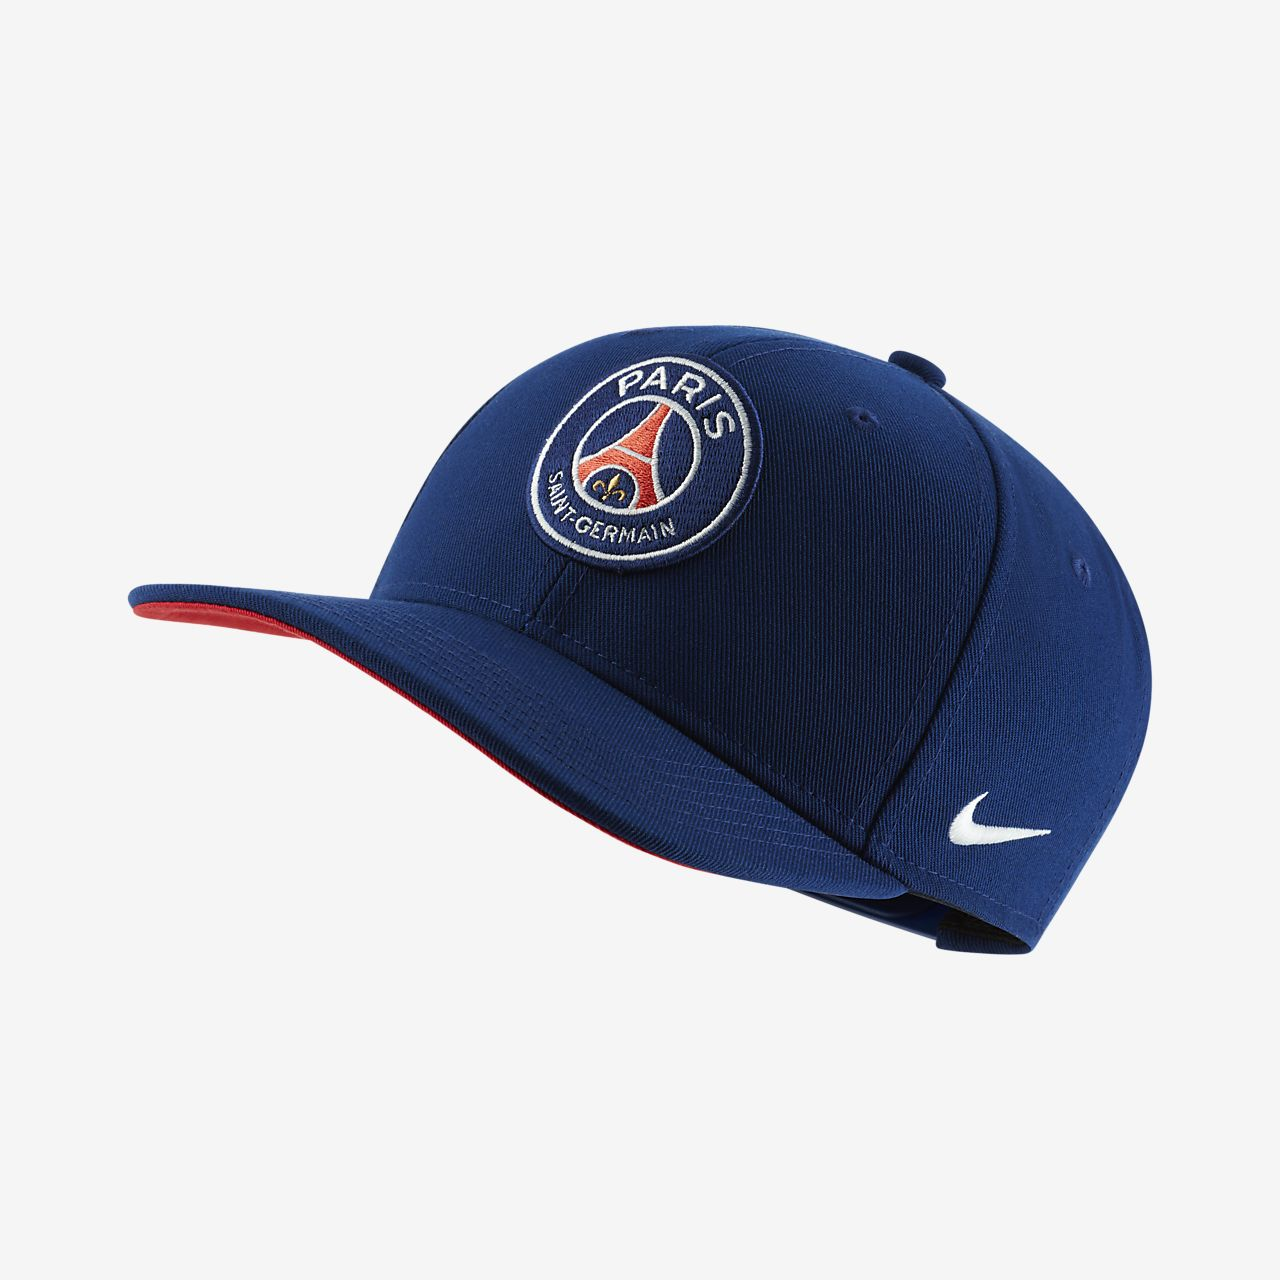 Nike Pro Paris Saint-Germain Verstelbare kinderpet